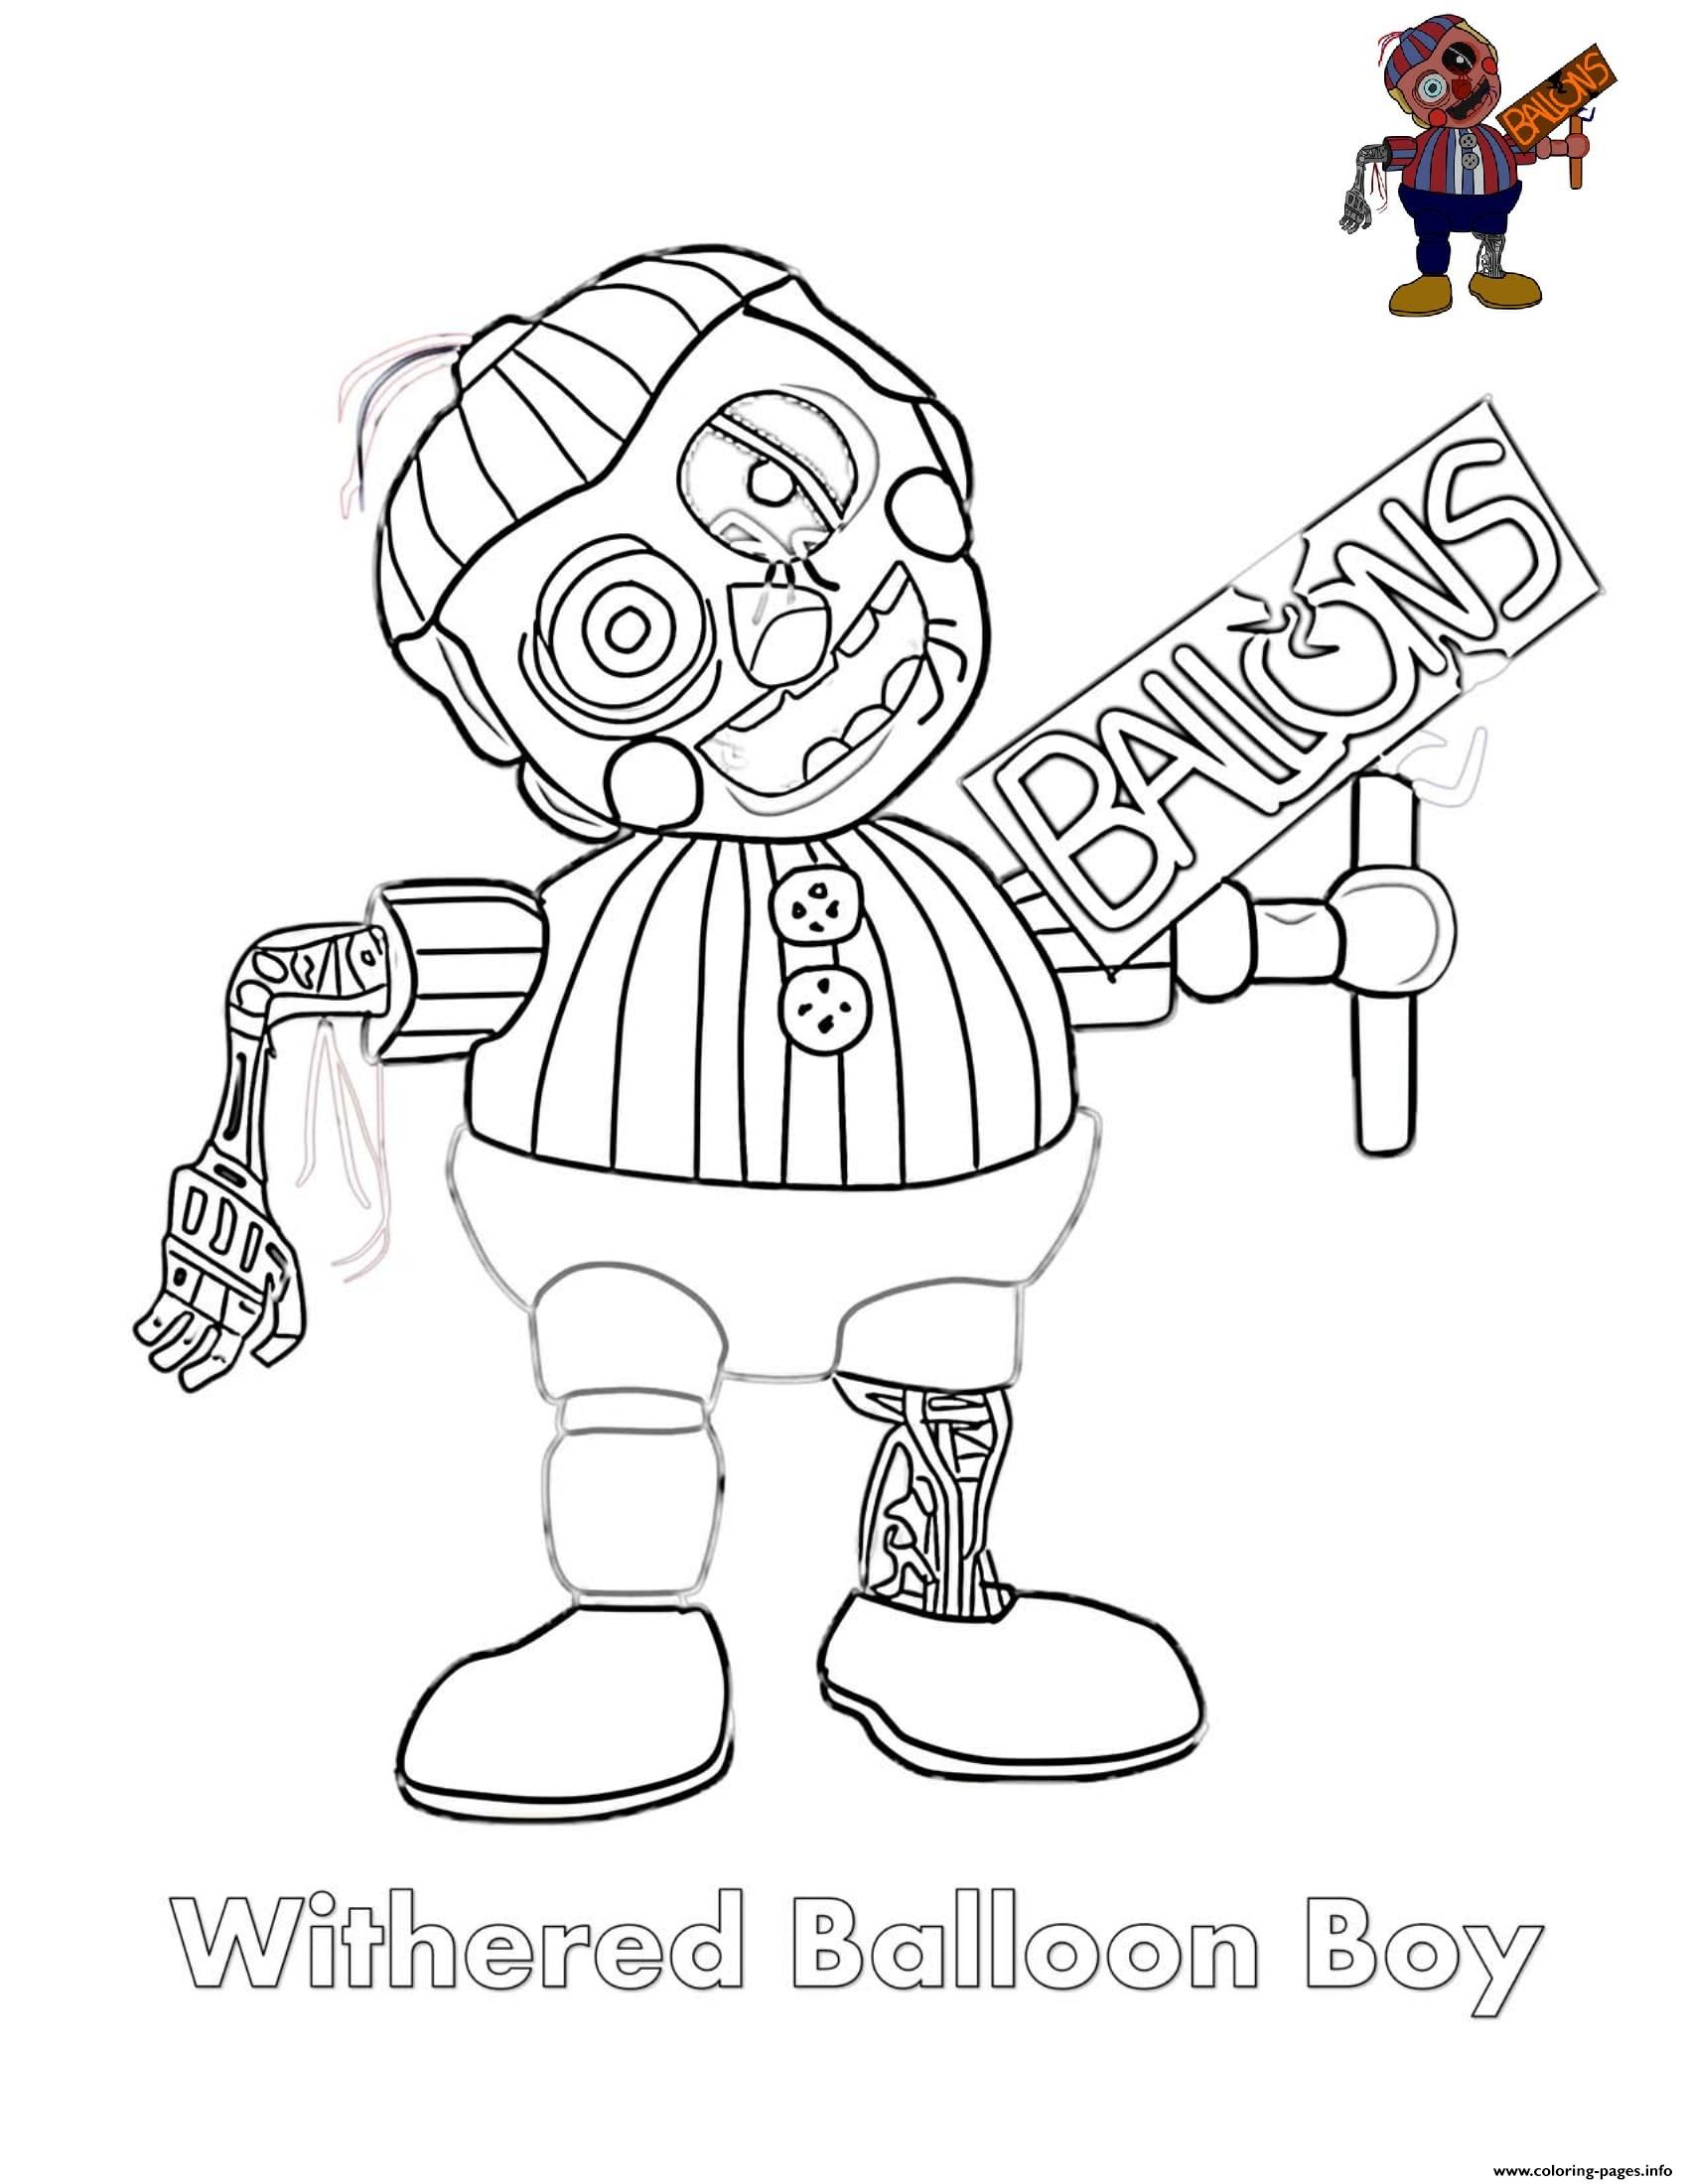 Withered Balloon Boy FNAF Coloring Pages Printable